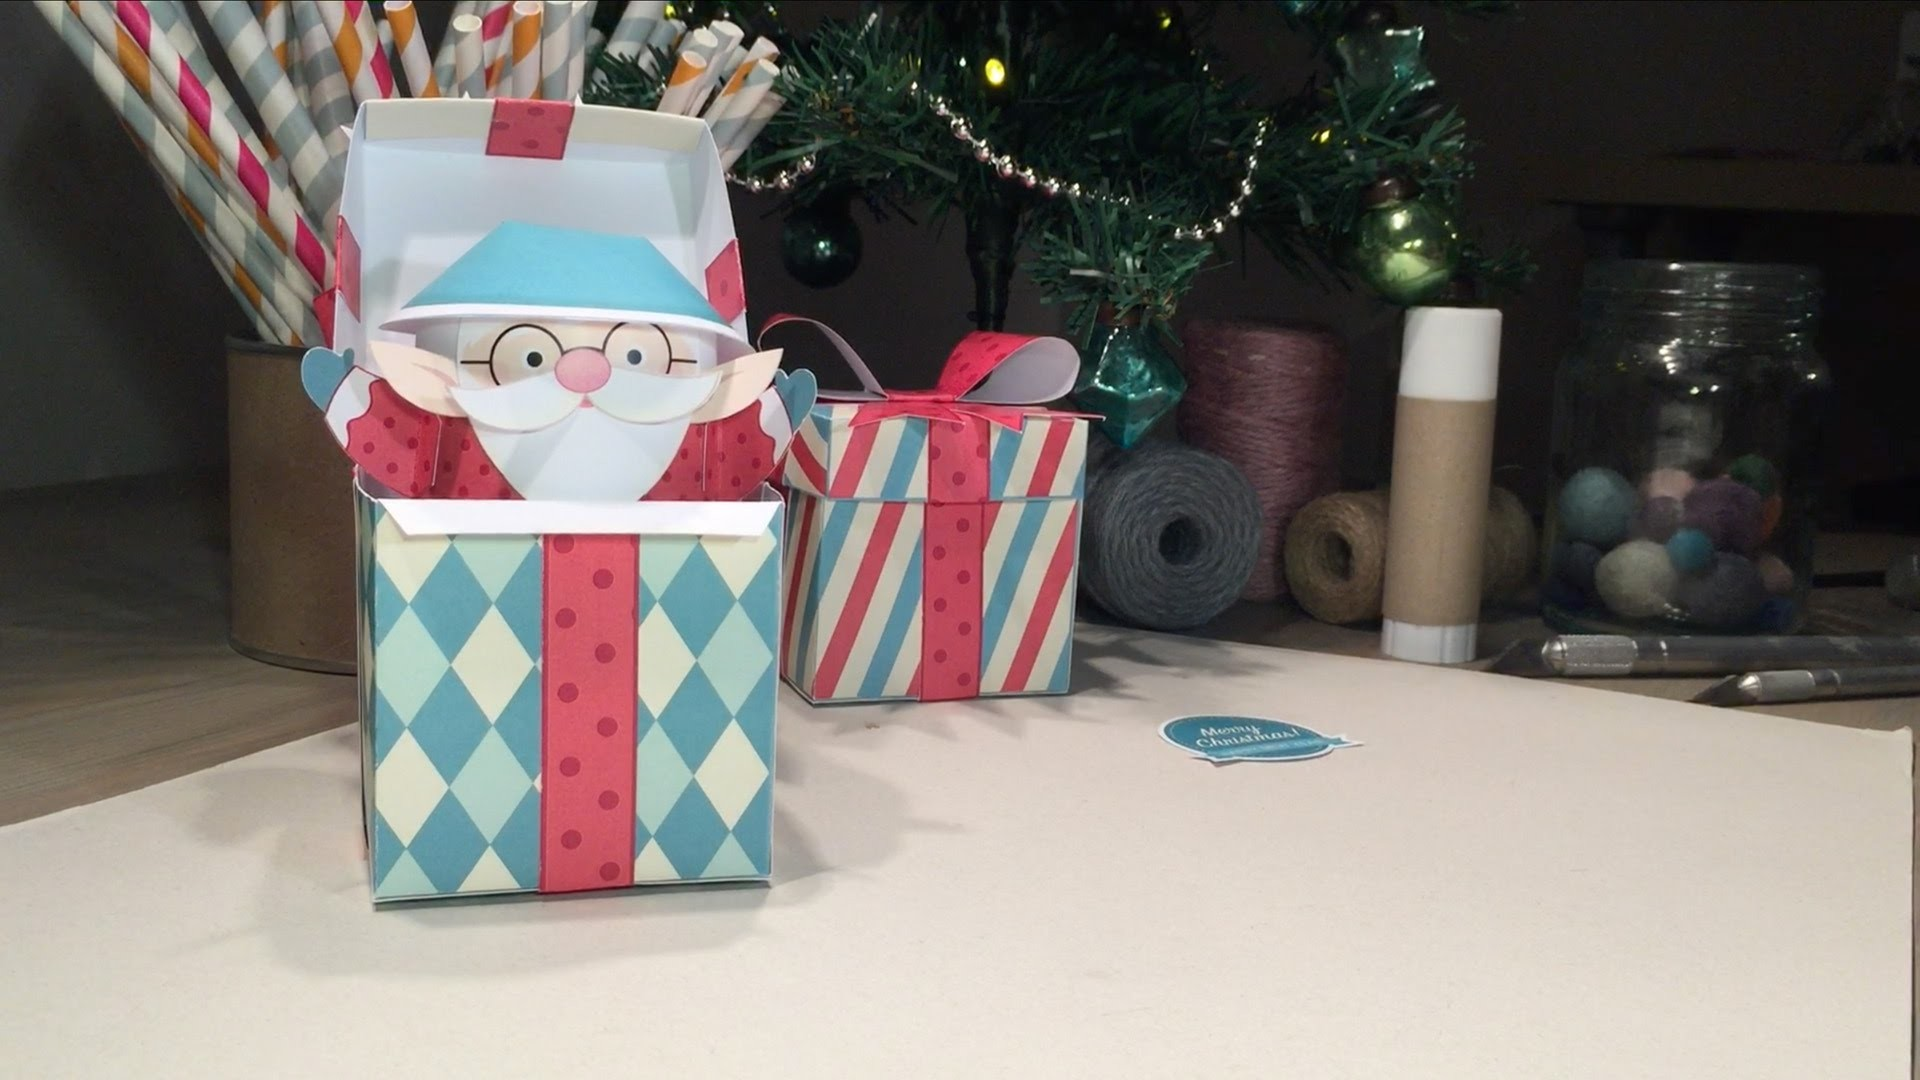 How to make a pop-up Santa in a box - papercraft activity